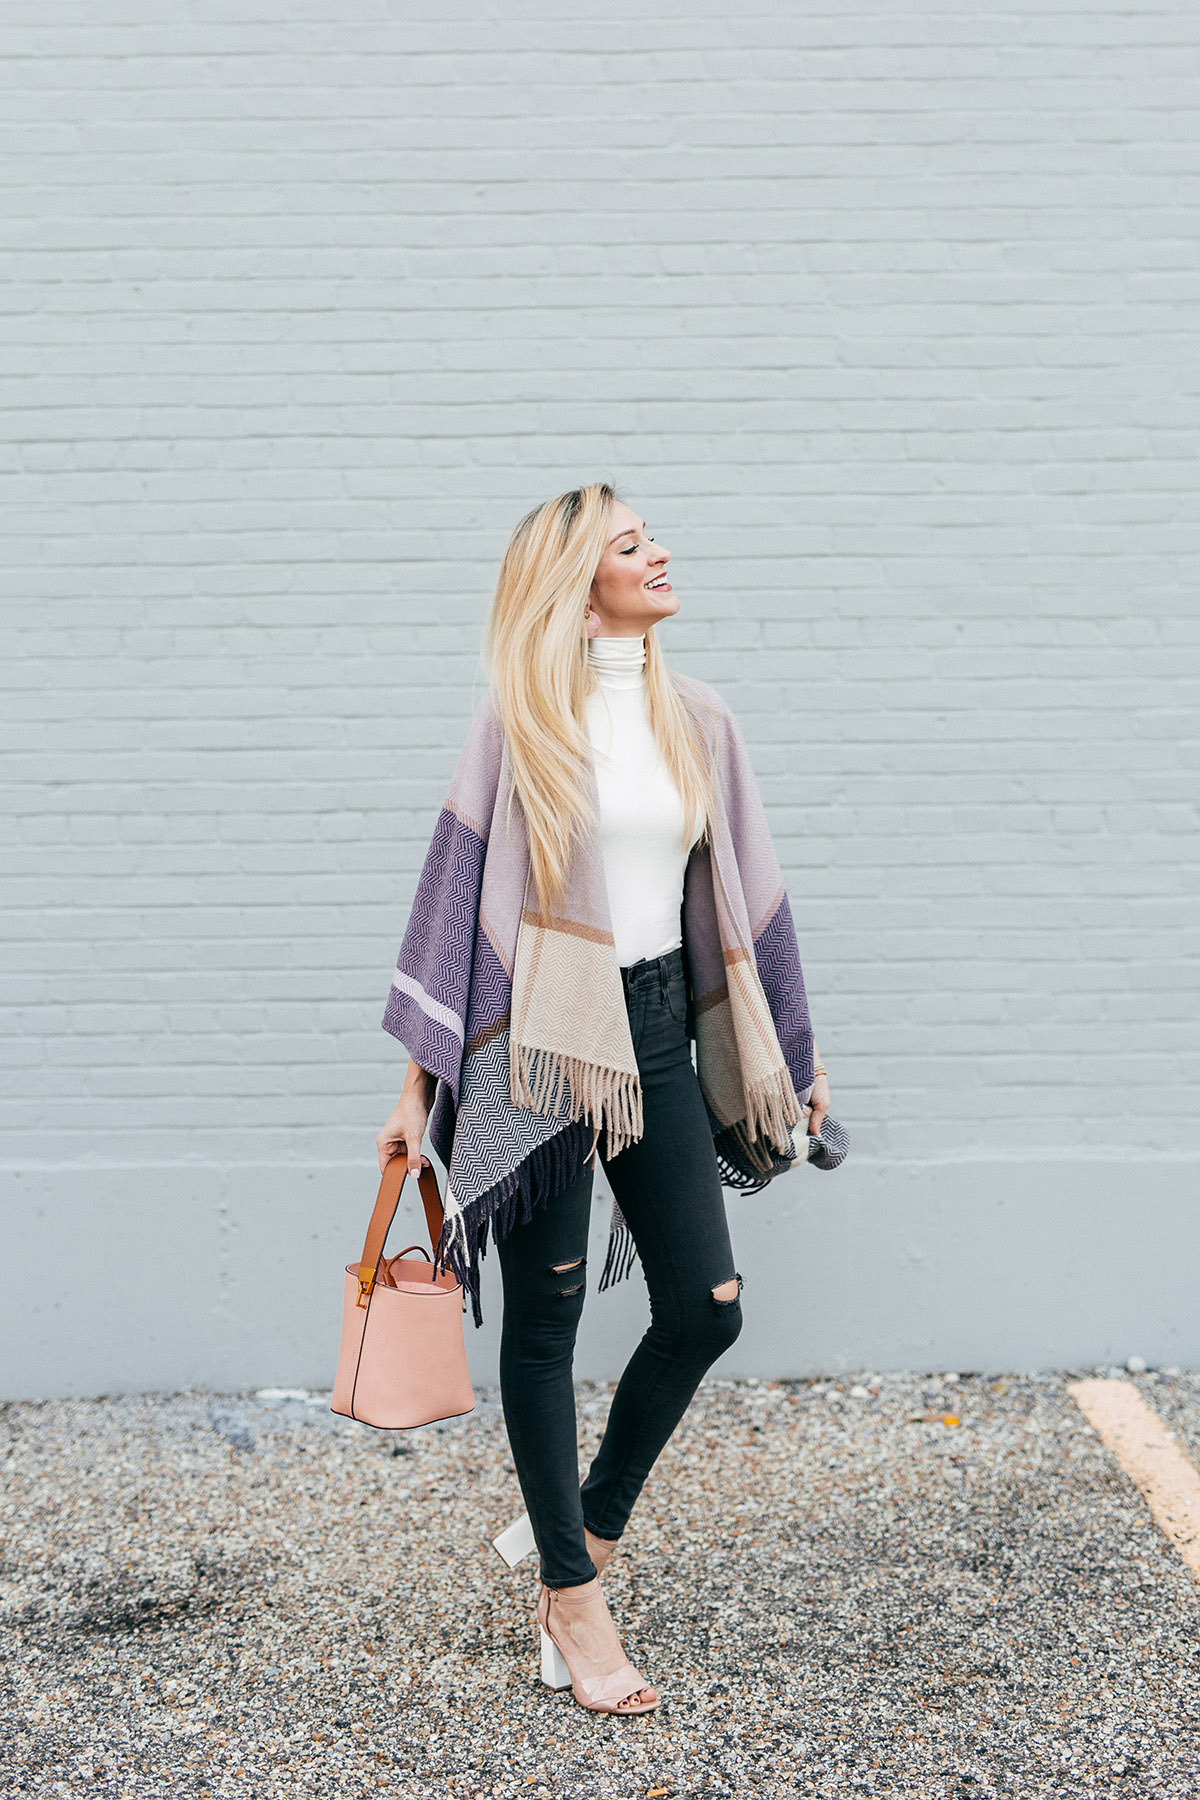 Fall Poncho Outfit Idea   Fall Date Night Outfit Ideas   Fall Poncho for Date Night   How to Dress Up a Poncho